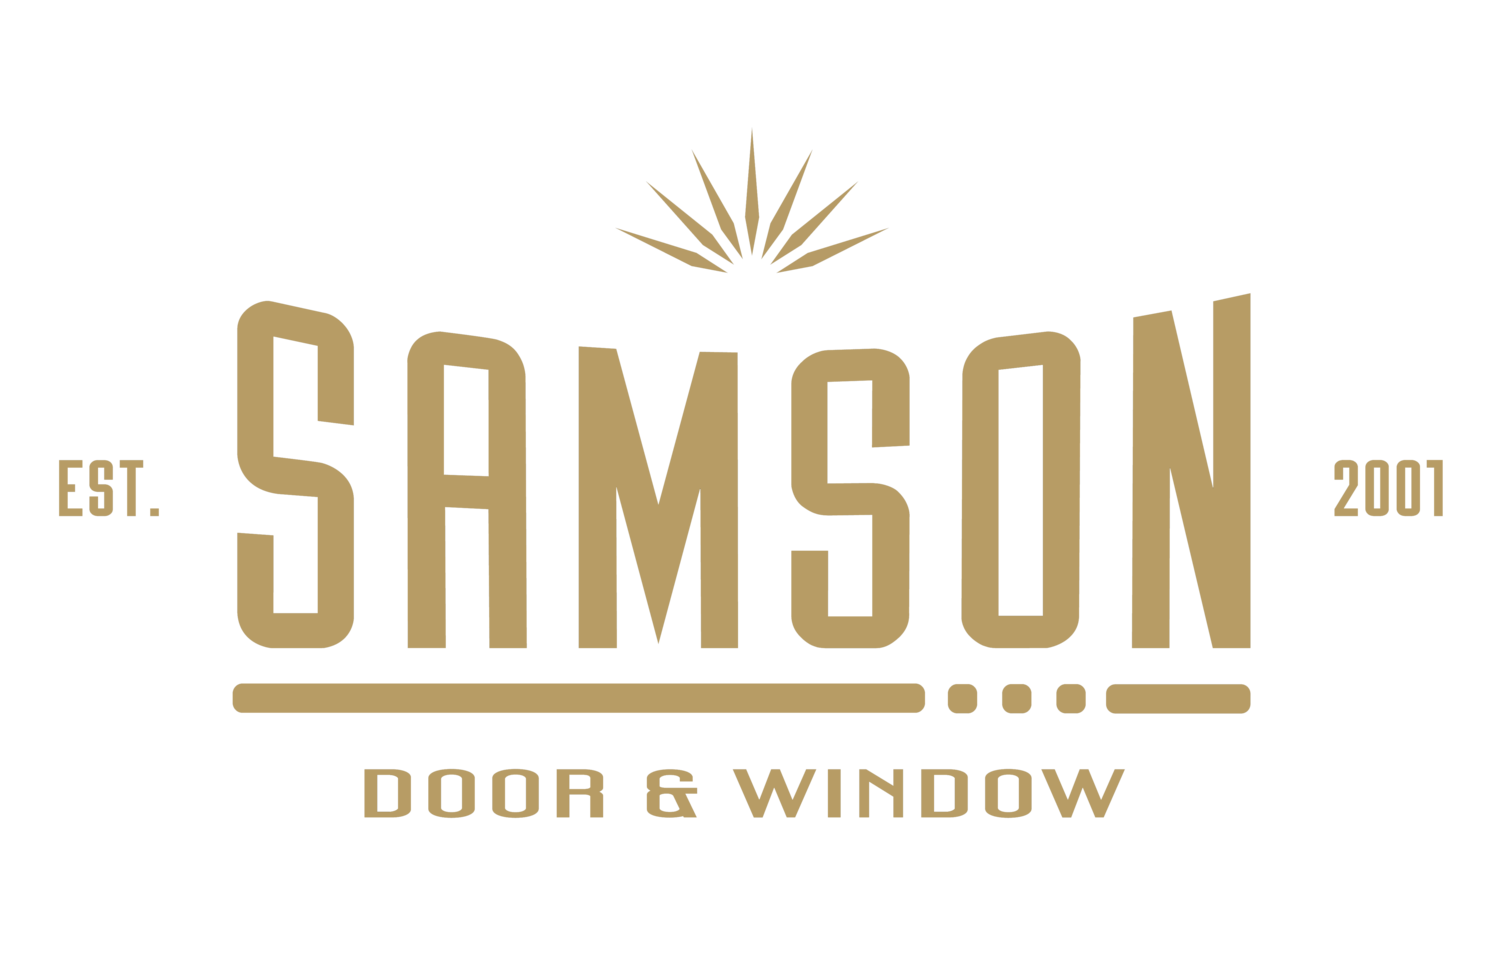 Samson Door & Window